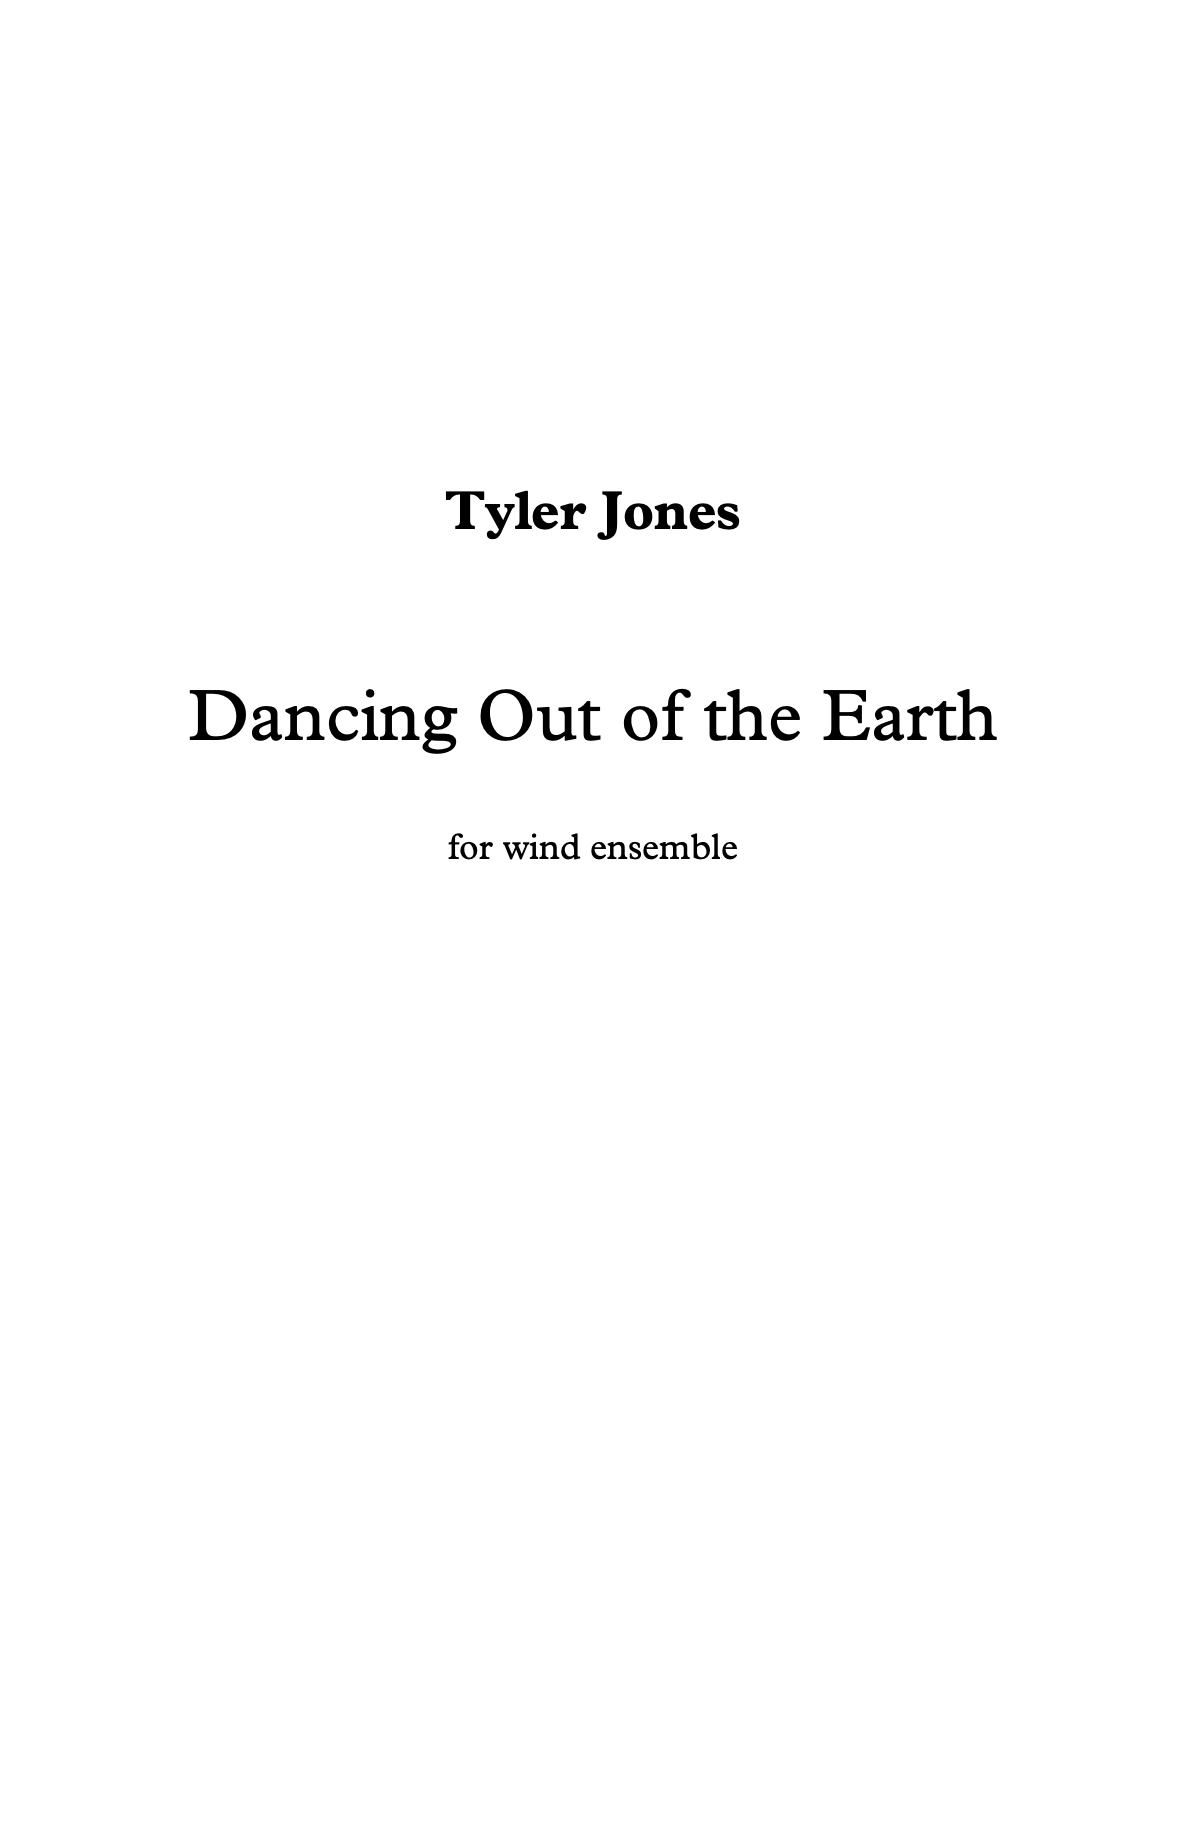 Dancing Out Of The Earth by Tyler Jones